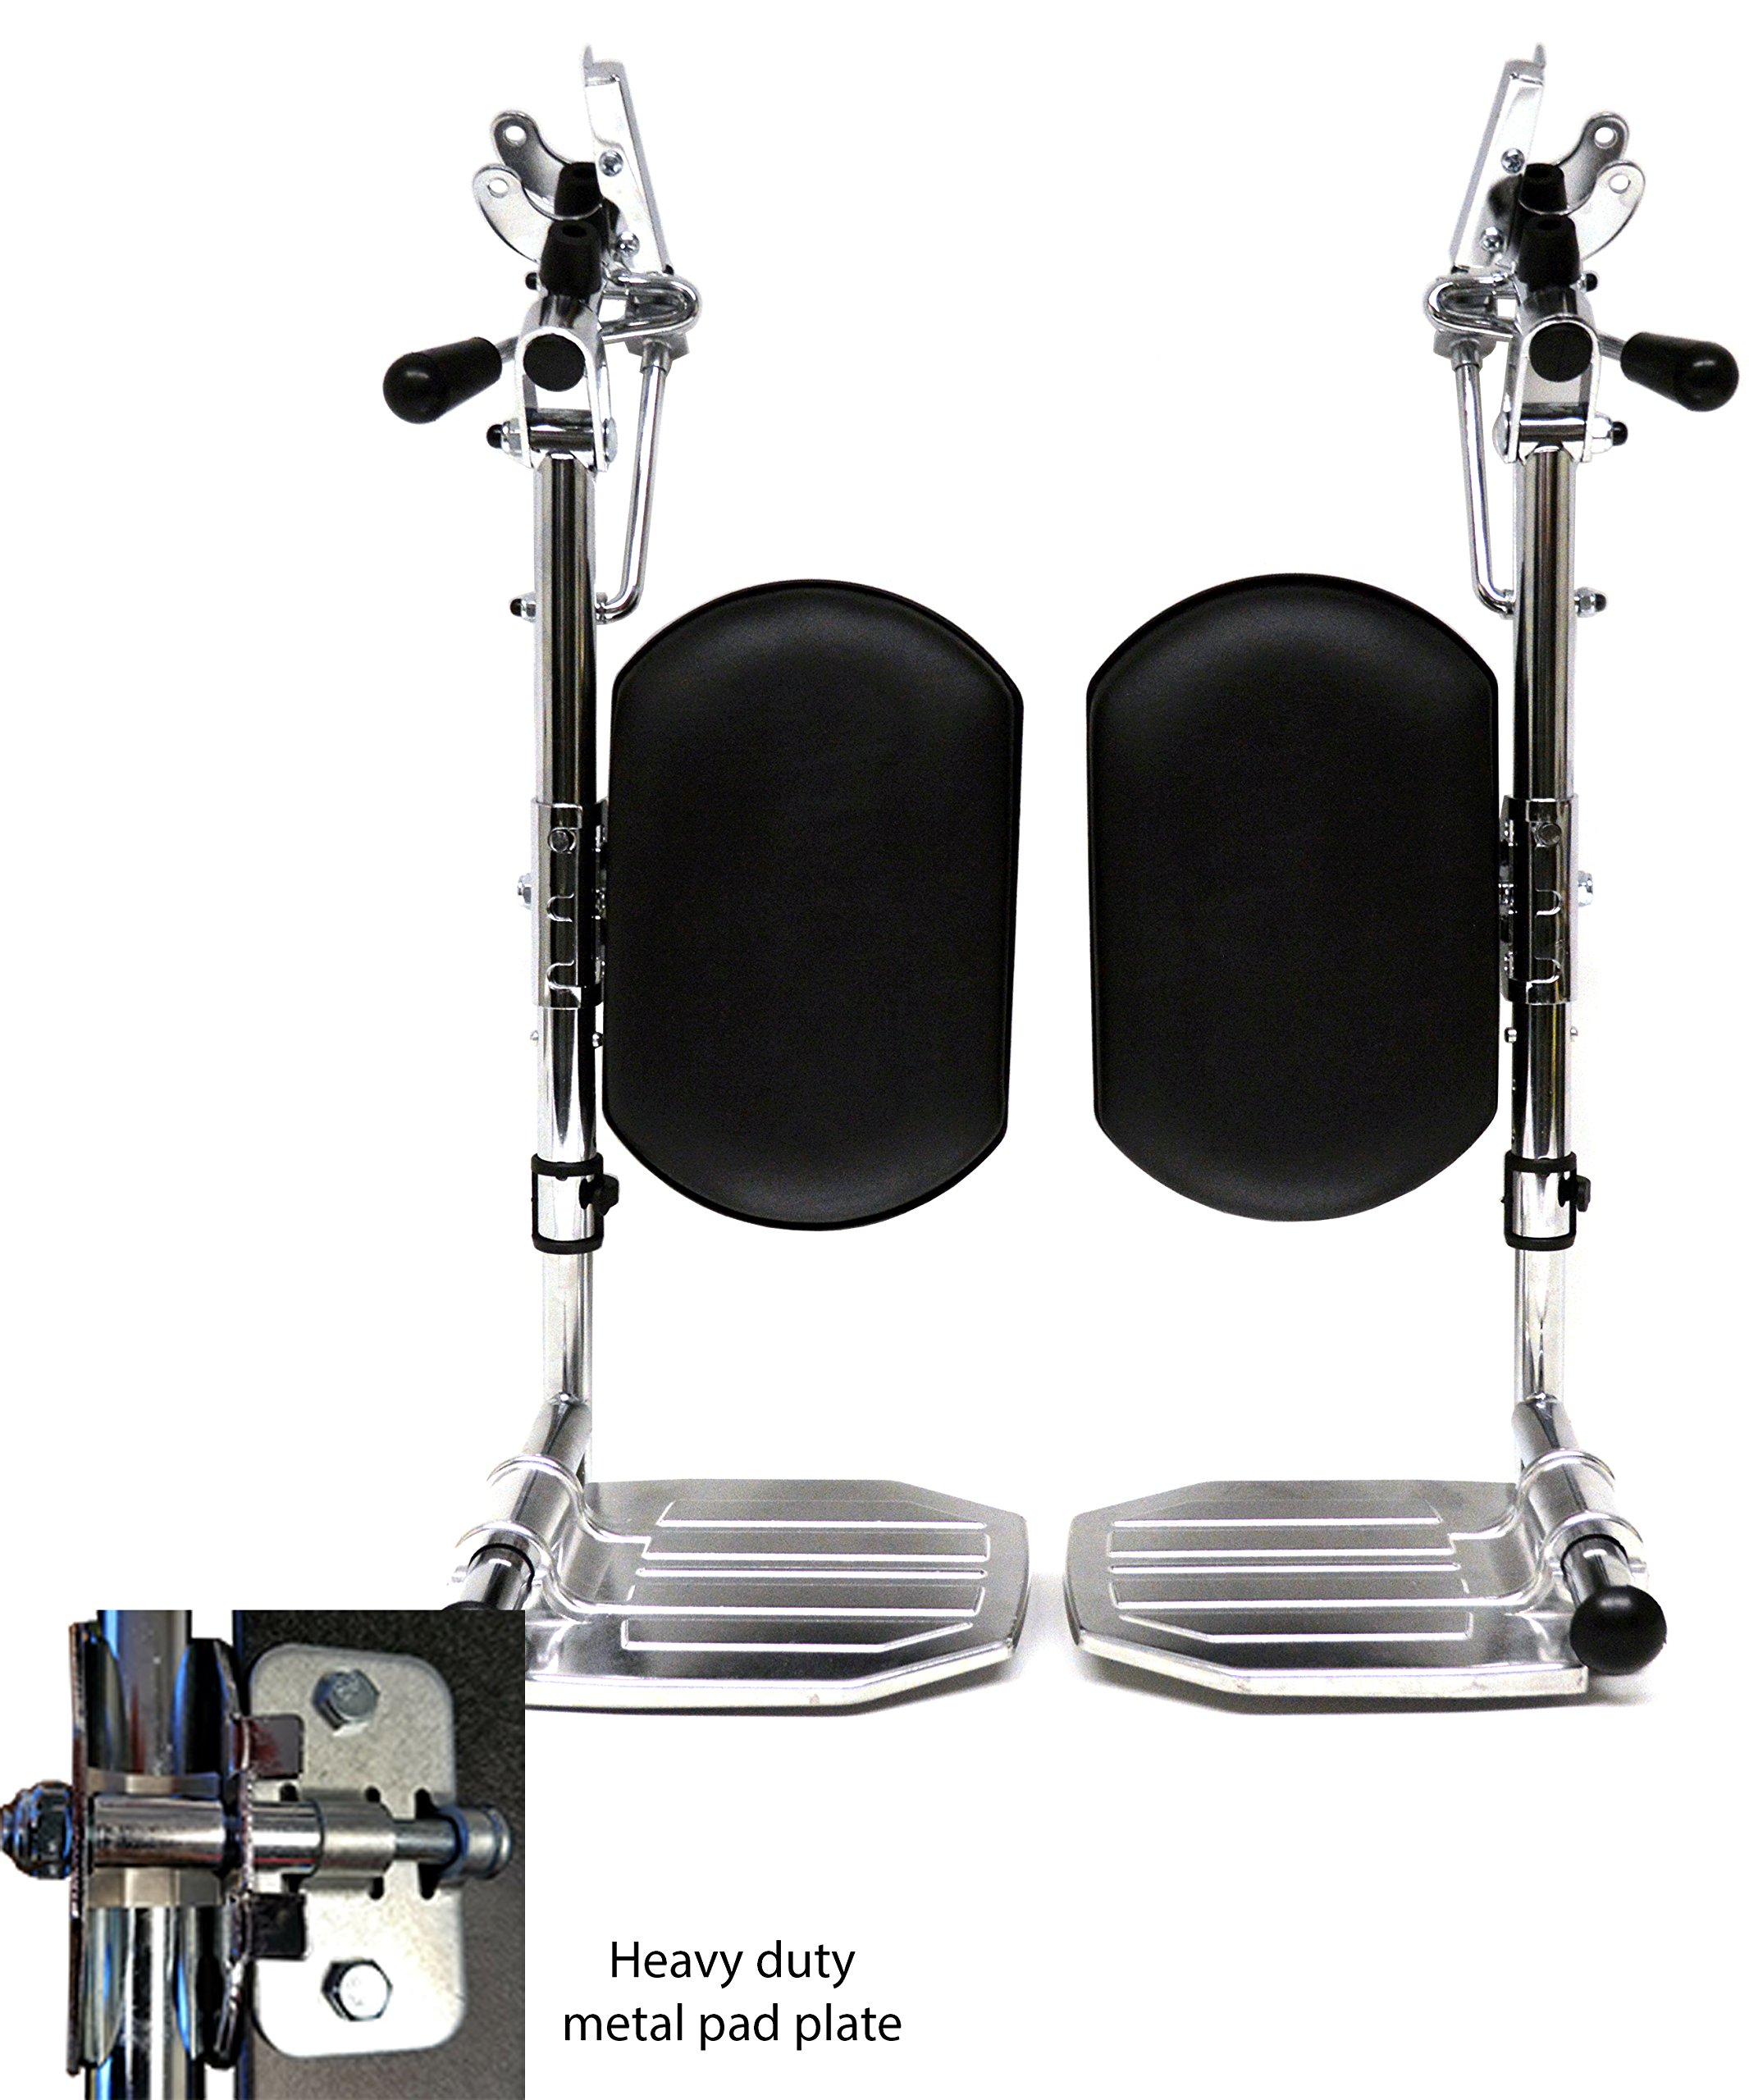 Heavy Duty Chrome Wheelchair Legrests with Aluminum Footplates & Black Calf Pads (Pair), 1-3/8'' Pin Spacing Fits Most Newer Medline, Drive, Invacare, E&J, ALCO & Other Manual Wheelchairs